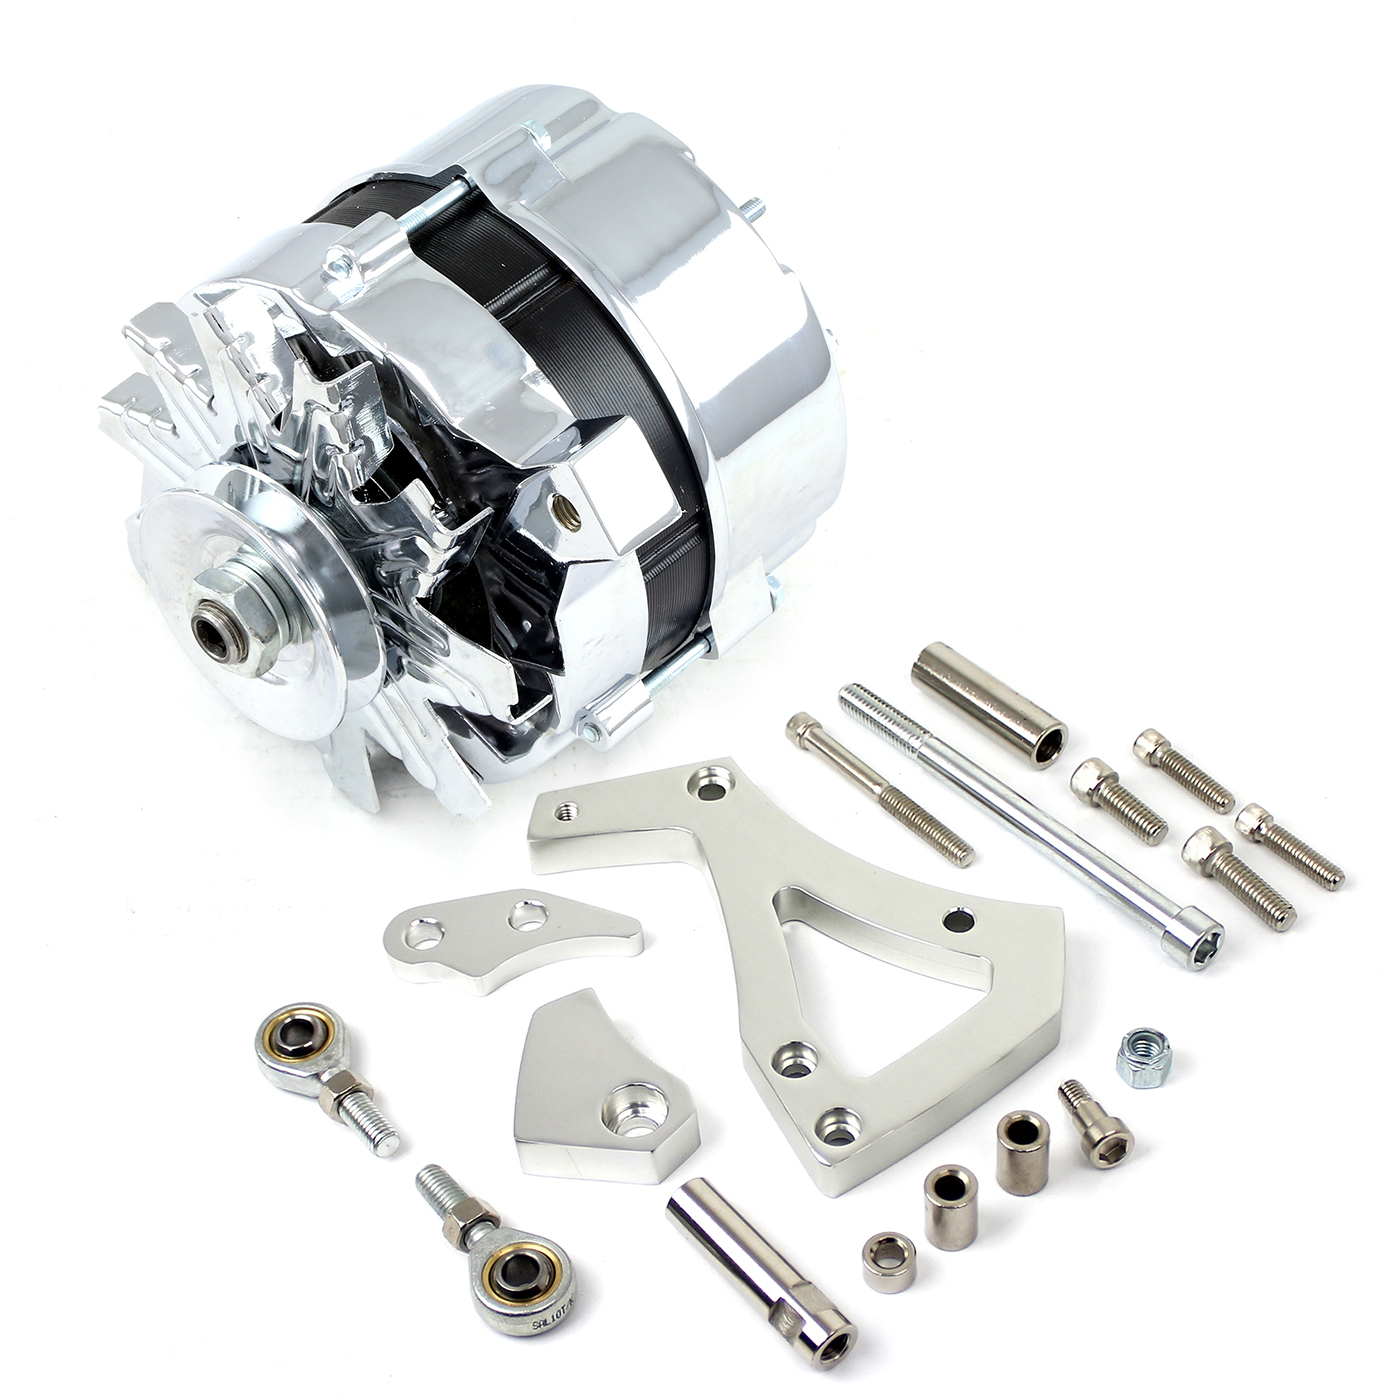 Ford 302 351C Cleveland 100 Amp V-Belt High Output Alternator & Bracket Kit